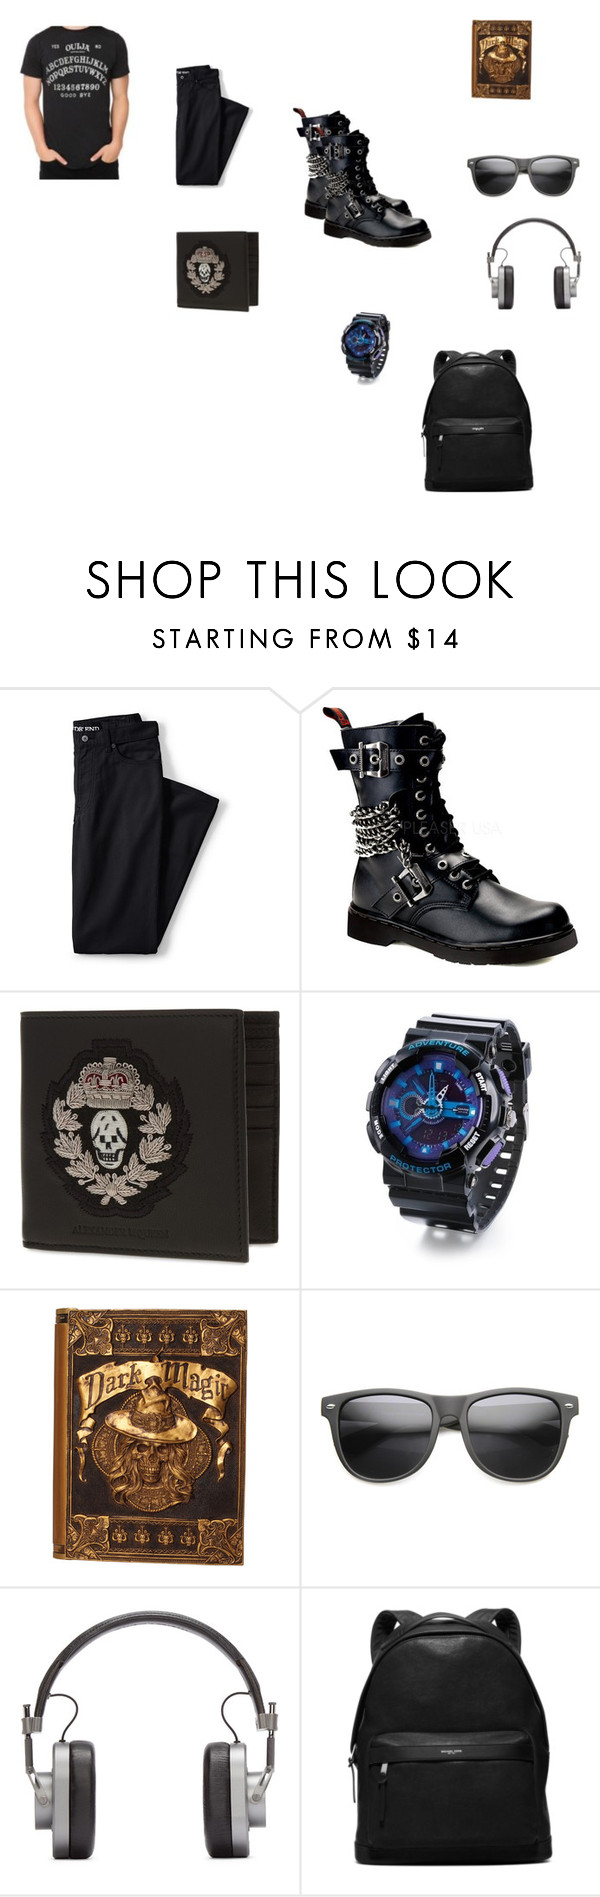 """""""Apocliptica"""" by aimee-st-martin ❤ liked on Polyvore featuring Lands' End, Demonia, Alexander McQueen, Master & Dynamic, Michael Kors, men's fashion and menswear"""